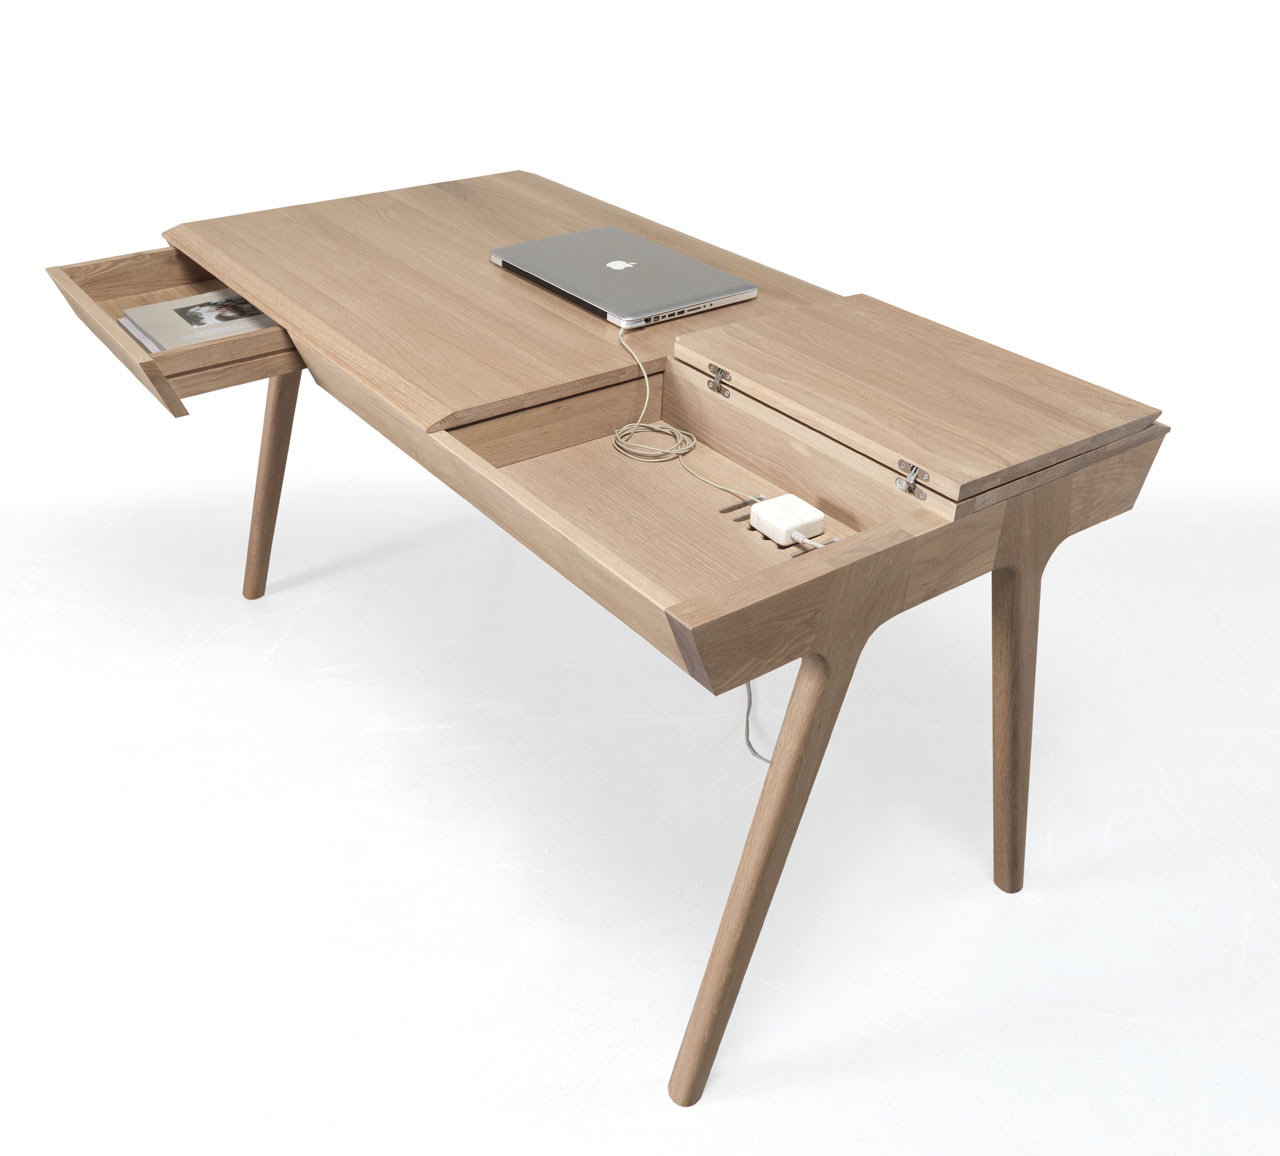 metis a solid wood desk with plenty of storage  design milk - metis a solid wood desk with plenty of storage